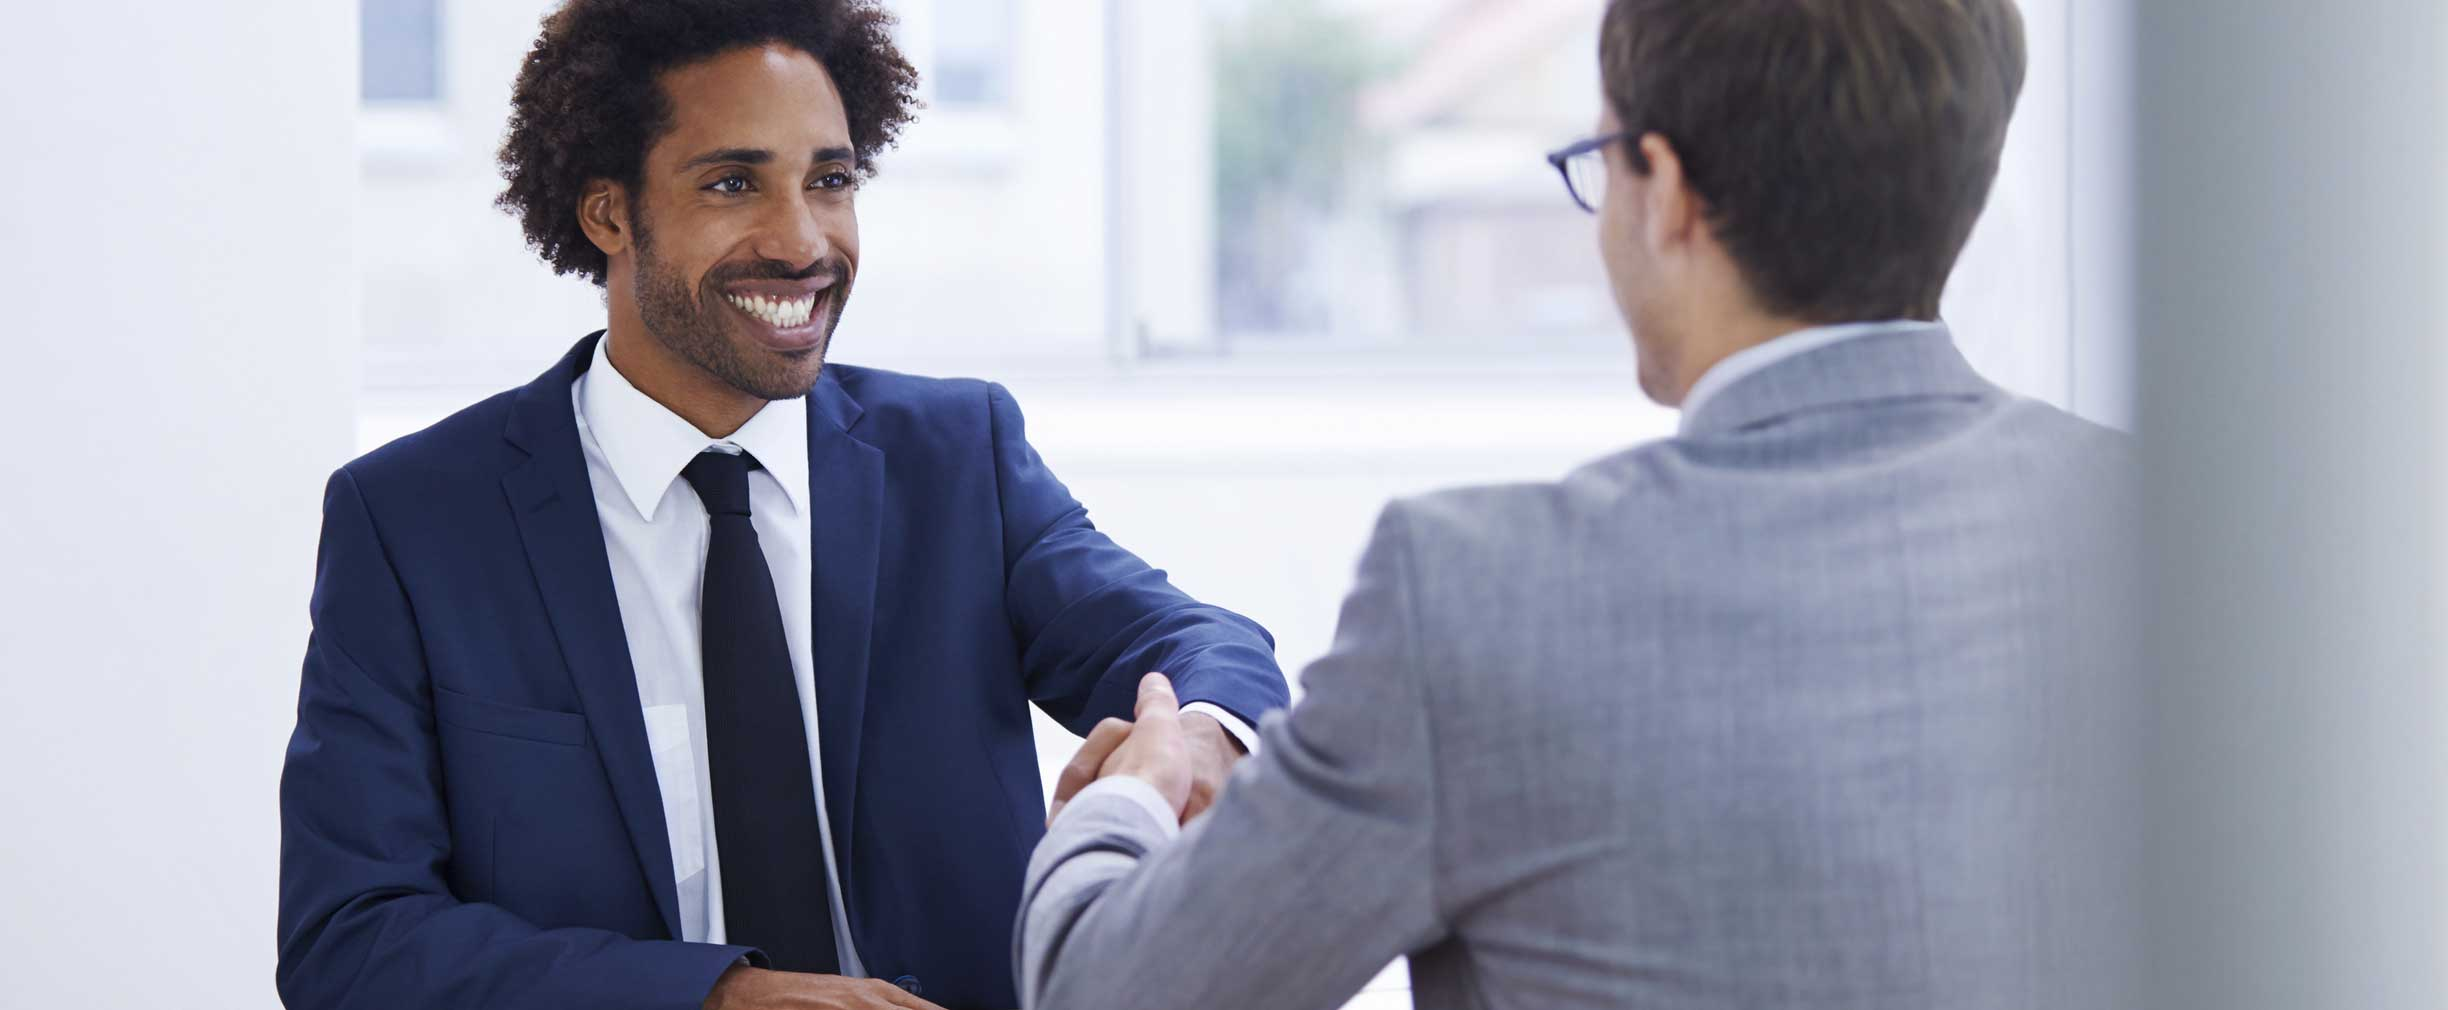 Five Tips For Nailing The Interview